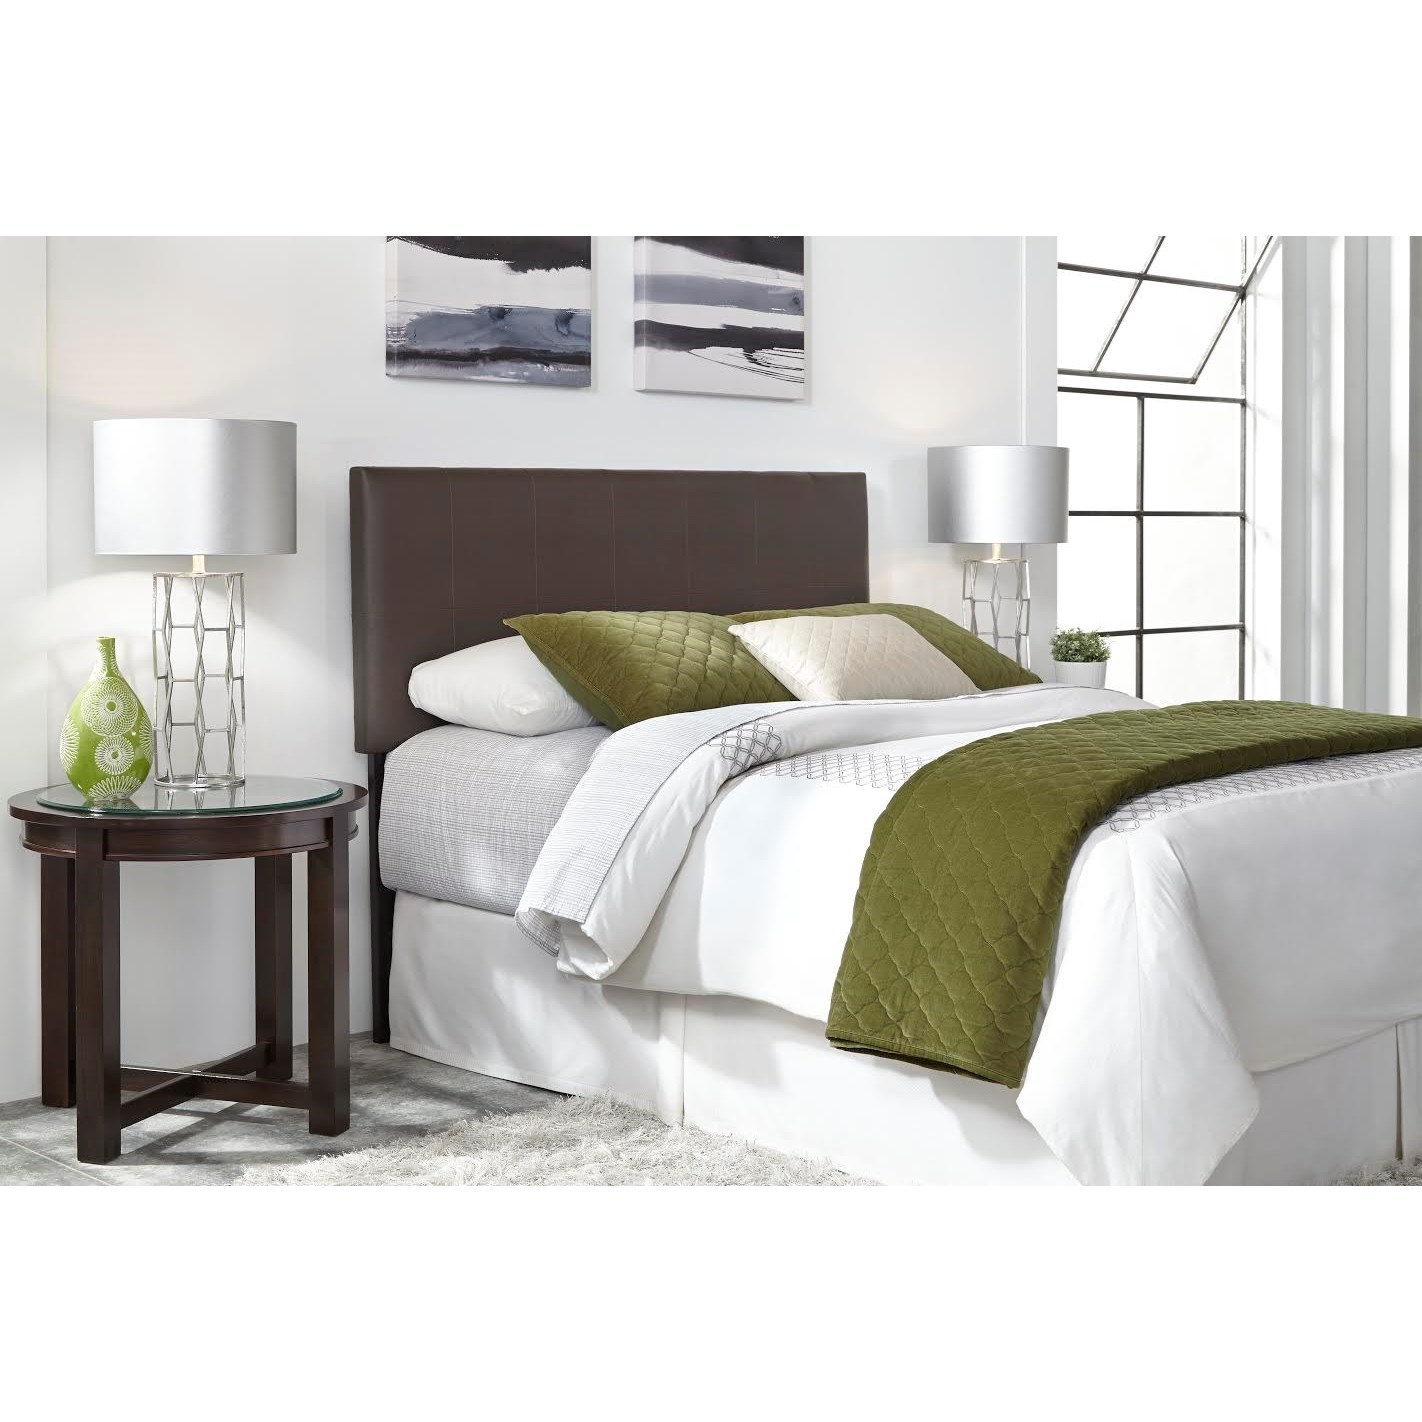 Fashion Bed Group UpholsteredBronson King/Cal King Headboard